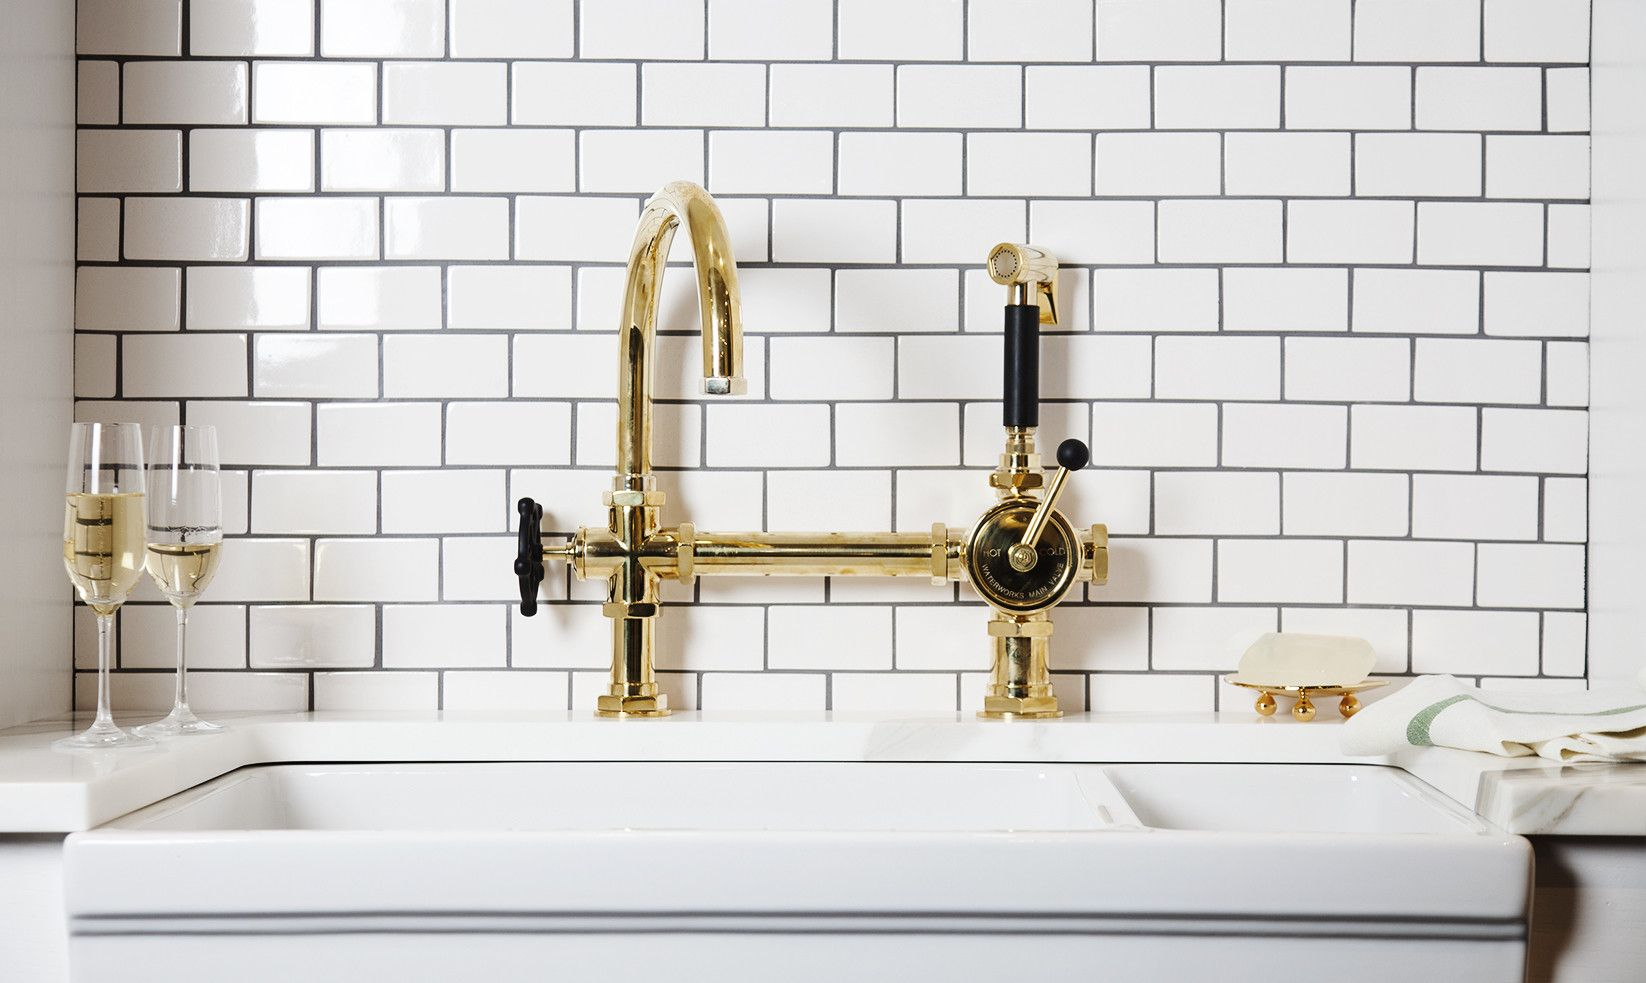 Küchenarmatur Real The Month S Top Finds Dec 2014 Jan 2015 Kitchen Ideas Brass